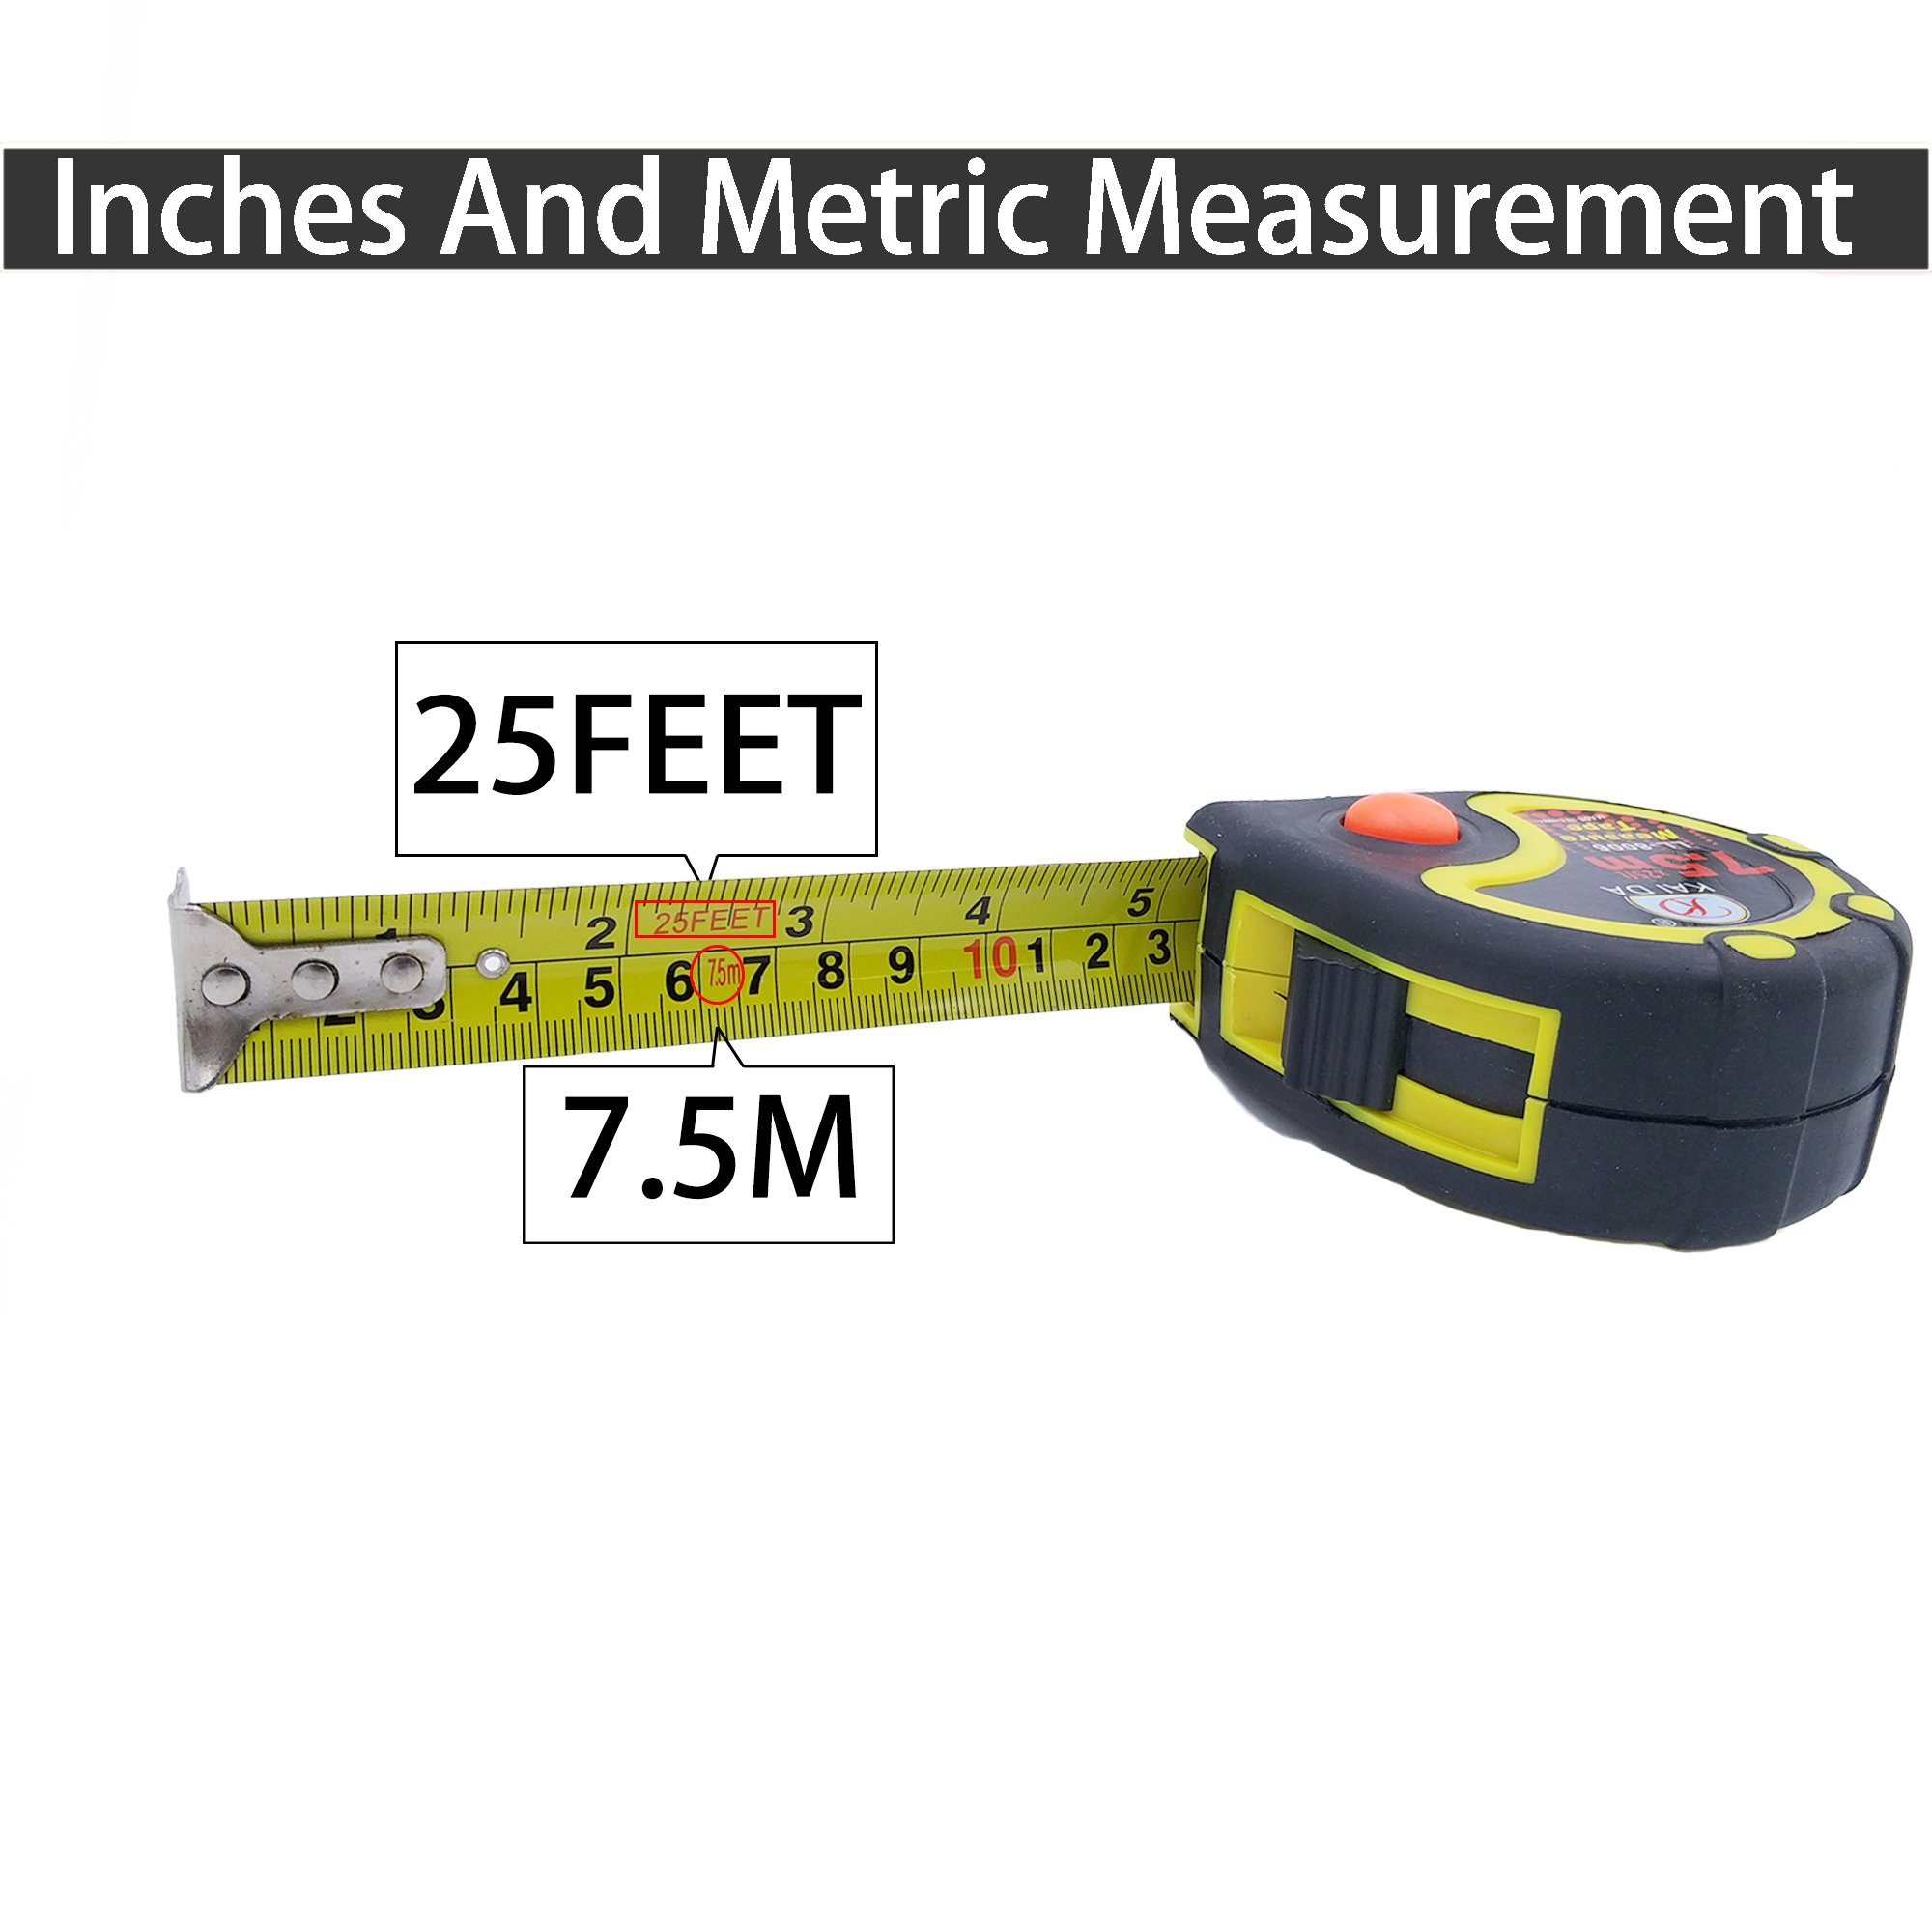 JSHOTS Tape Measure,Inches And Metric Measurement 25ft(7.5m), Tape Measure Retractable,Measuring Tape,Strong Belt Clip,Impact Resistant Rubber Covered Case by JSHOTS (Image #4)